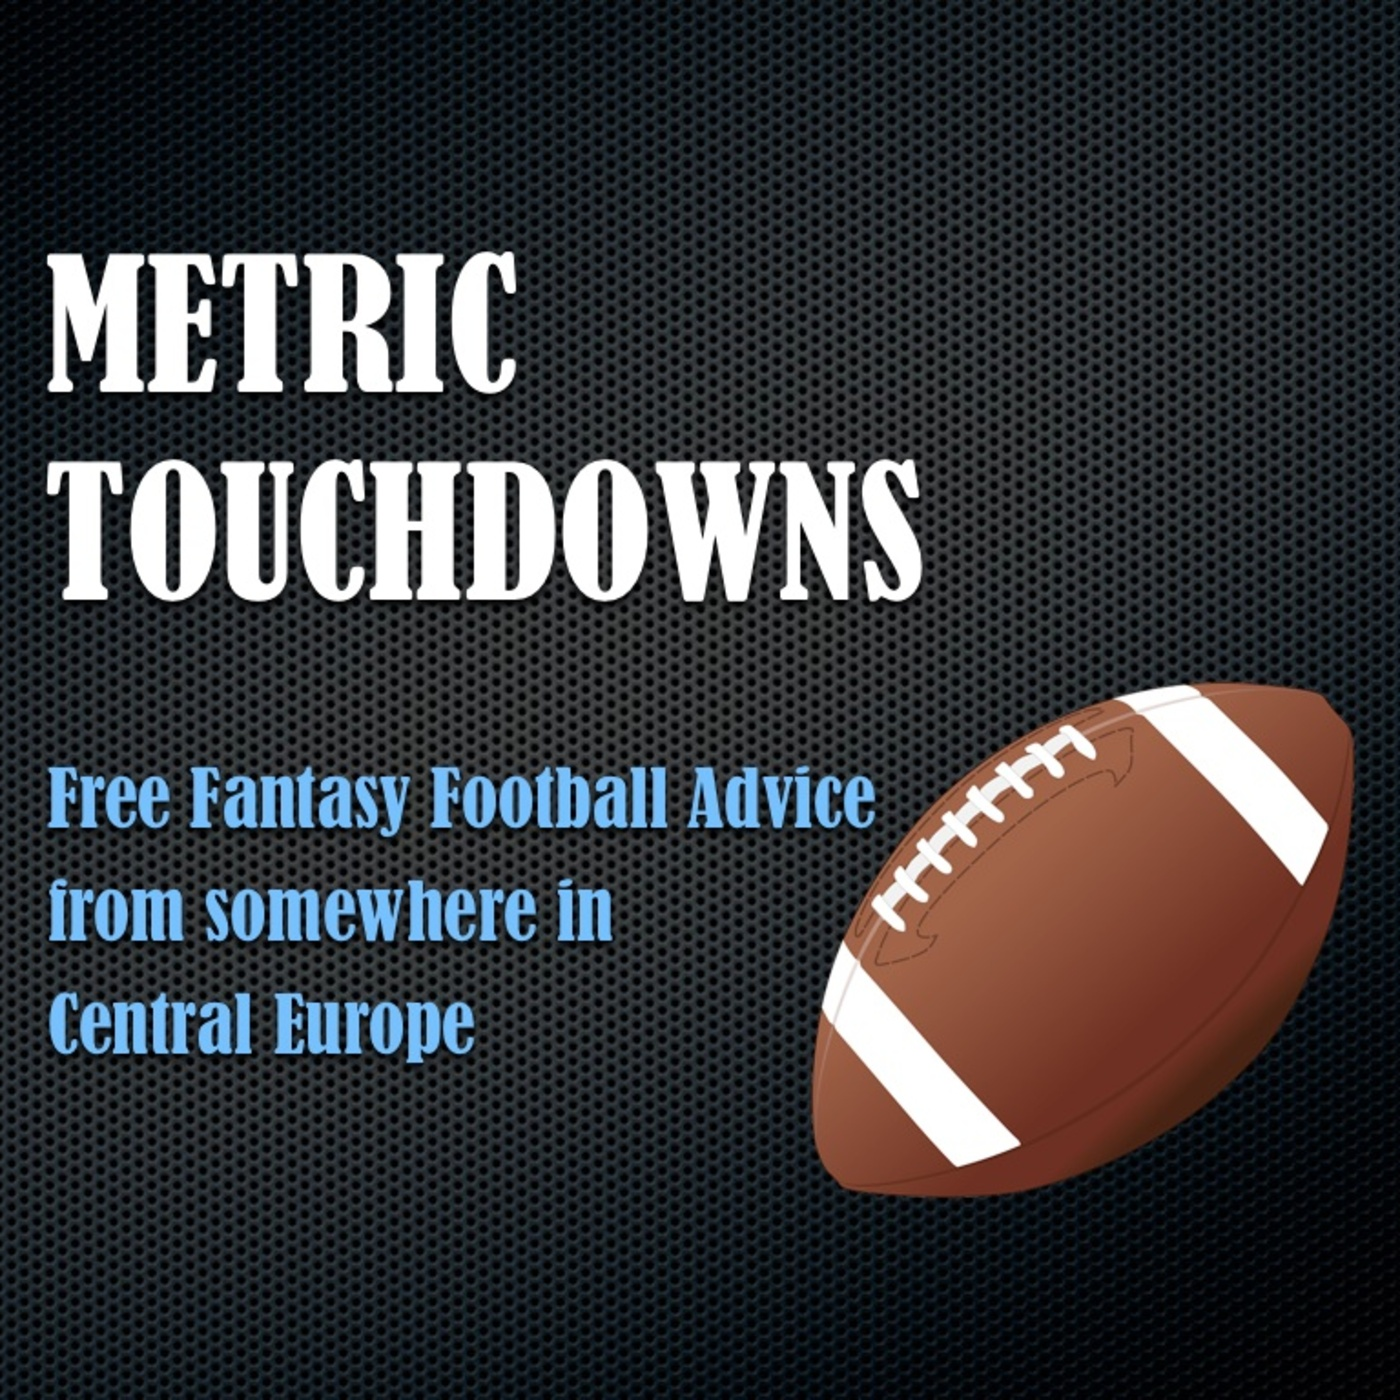 Metric Touchdowns Fantasy Football advice for Free